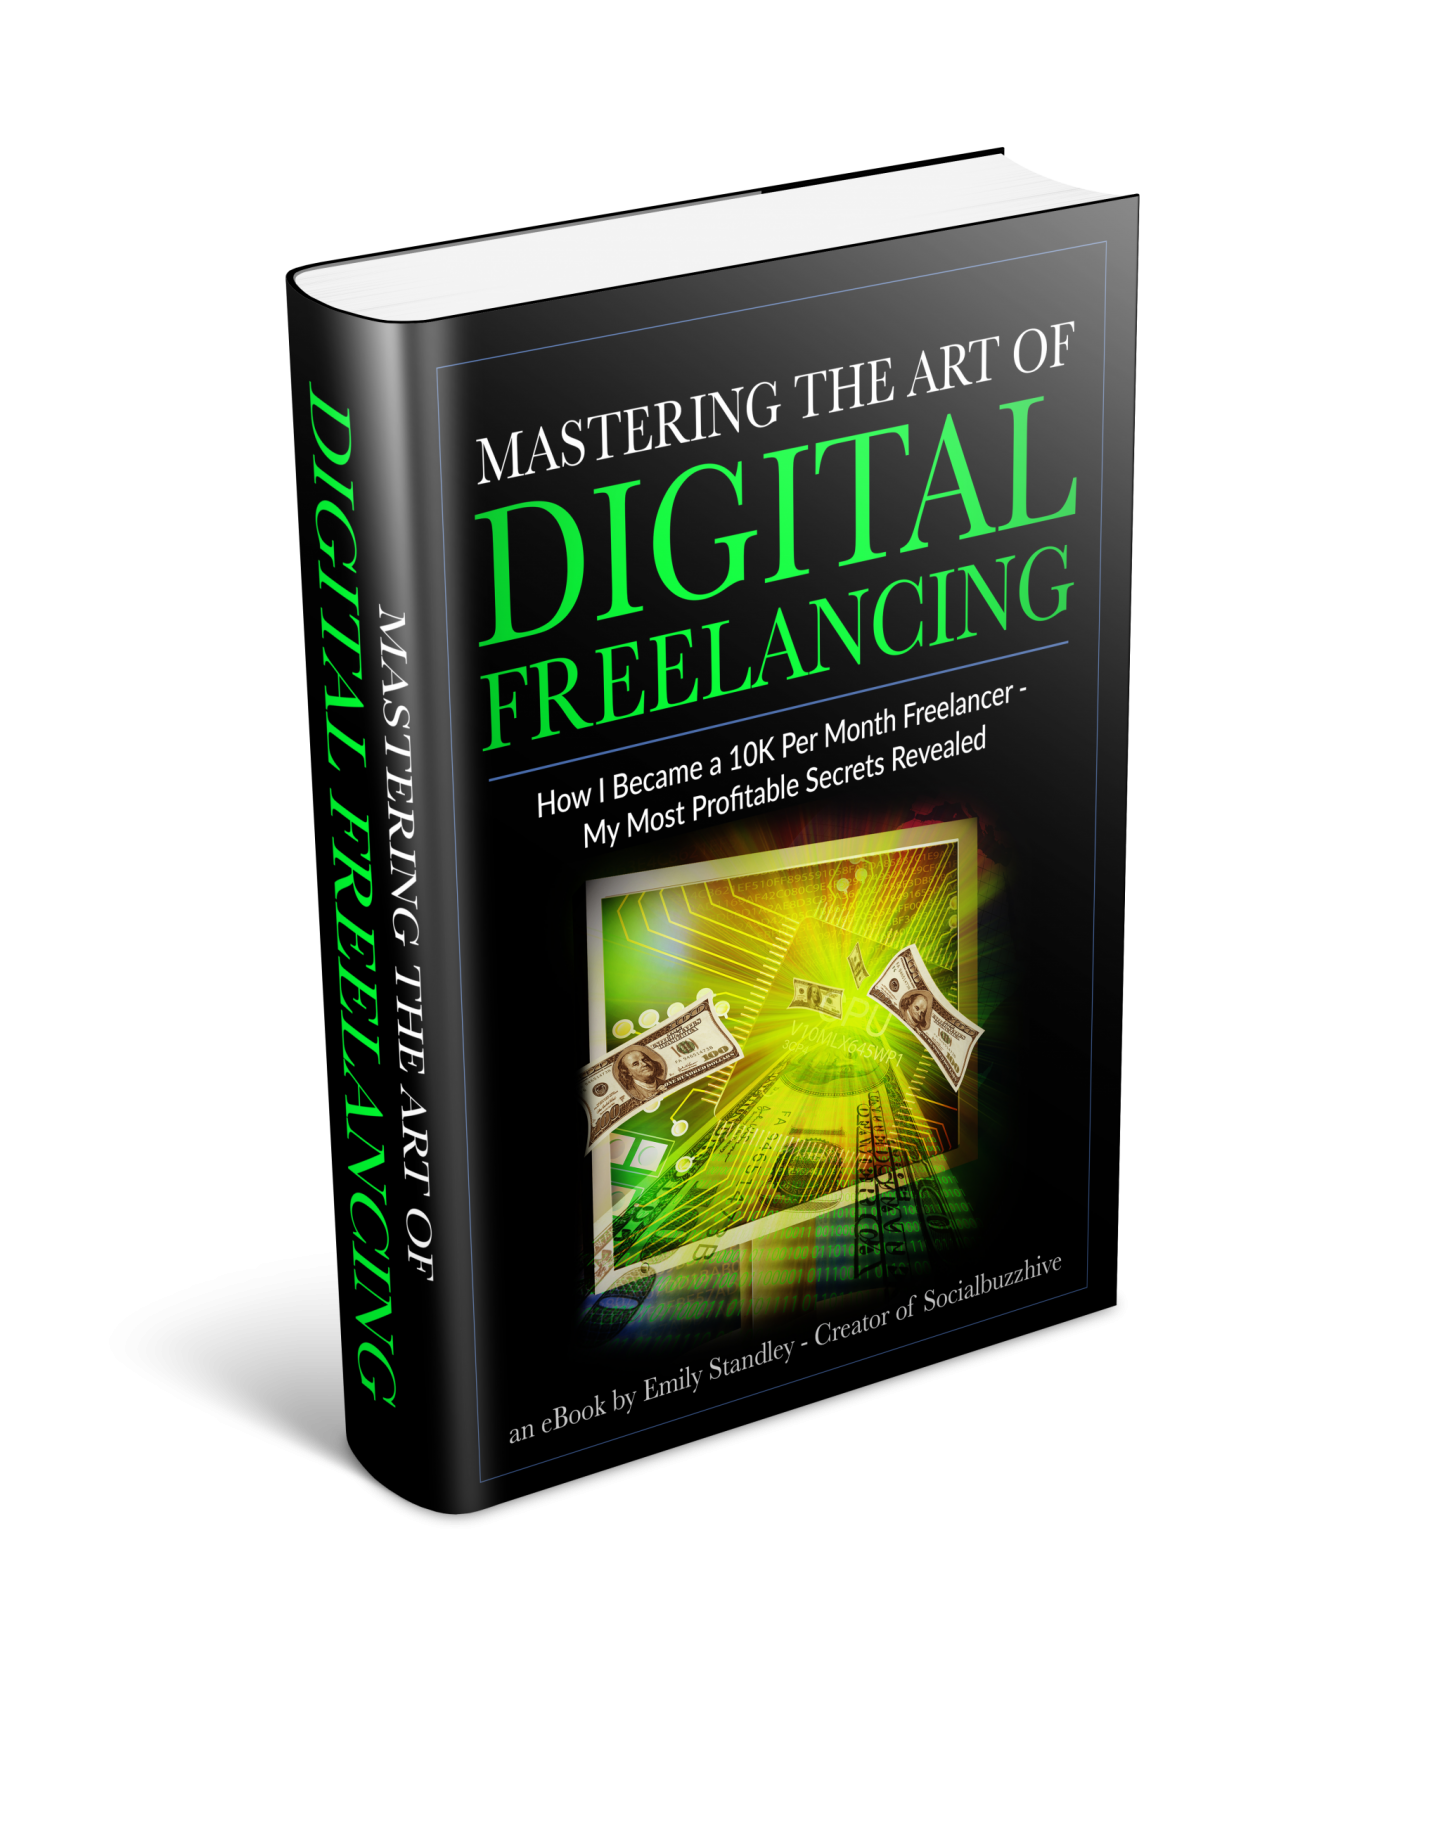 ebook Mastering the Art of Digital Freelancing